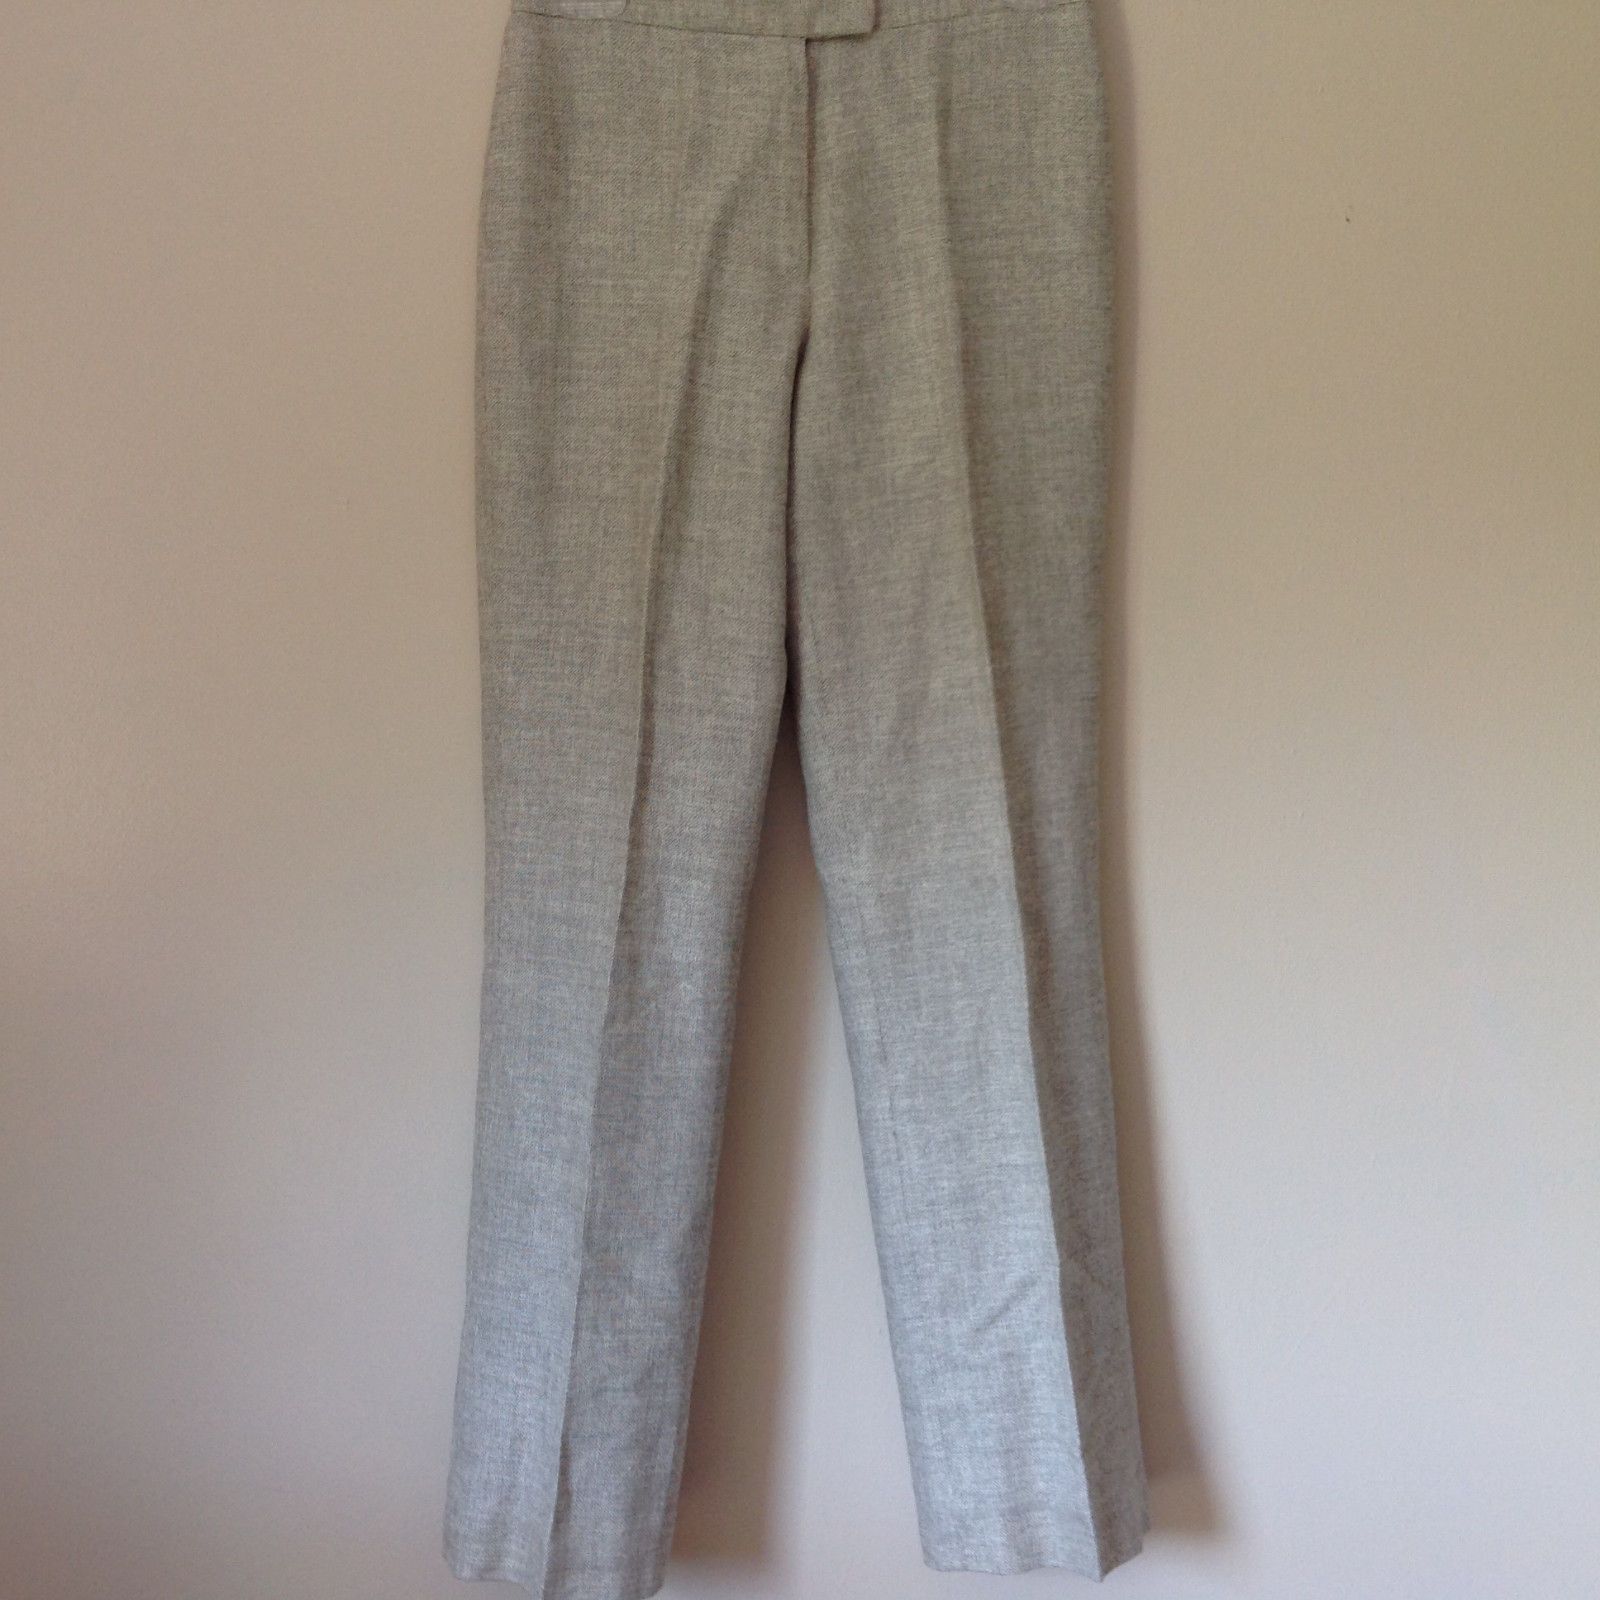 Gorgeous Dress Pants by Anne Klein Petite Light Colors Imported Fabric Size 4